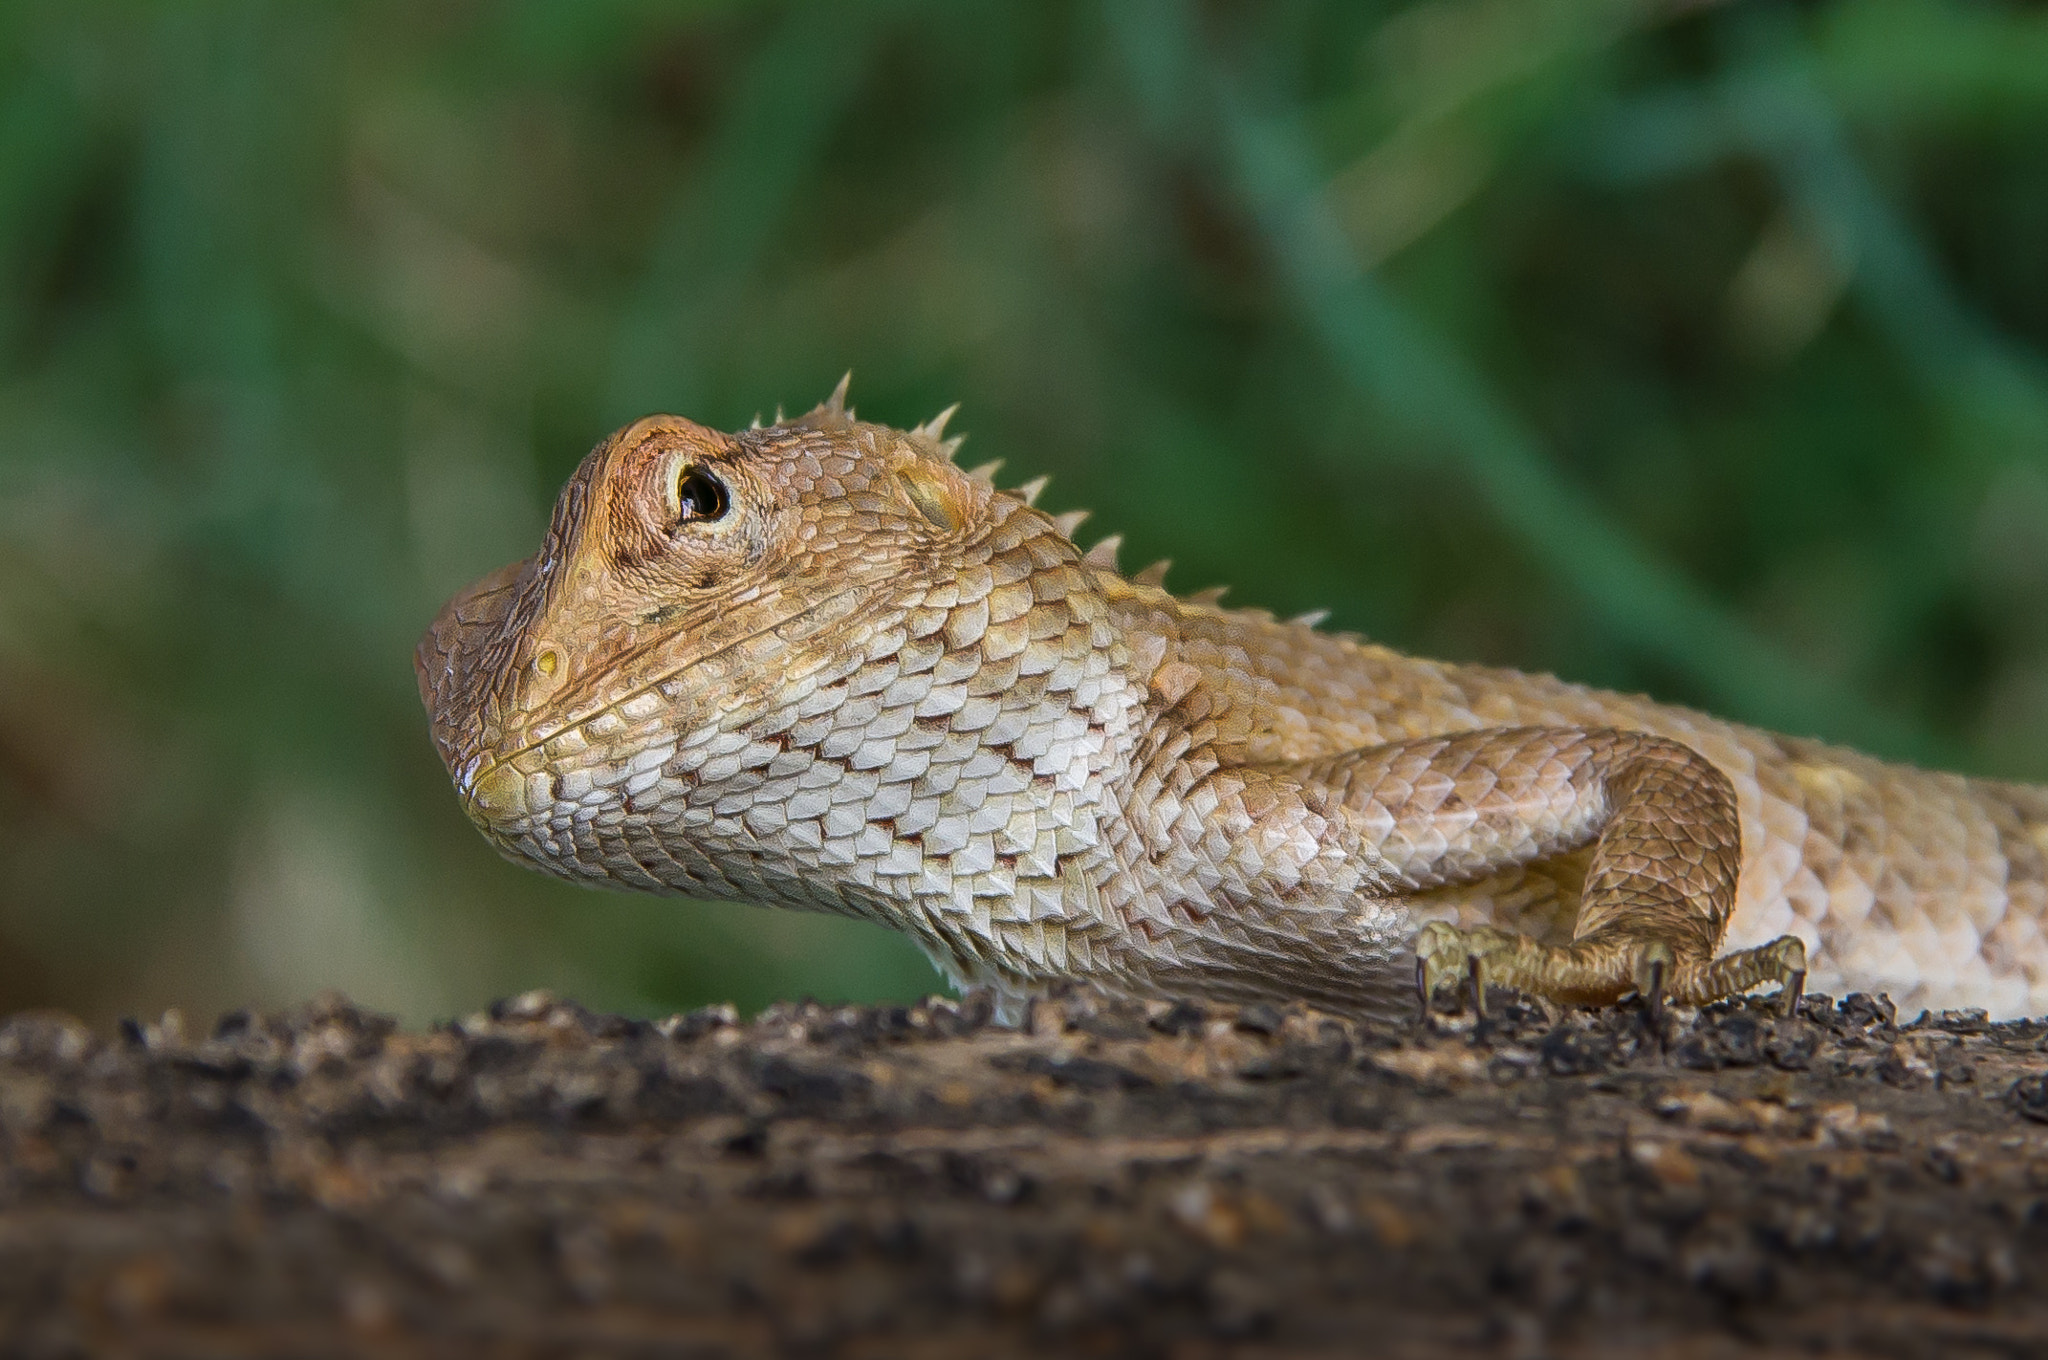 Photograph Garden Lizard by Jinesh Udani on 500px